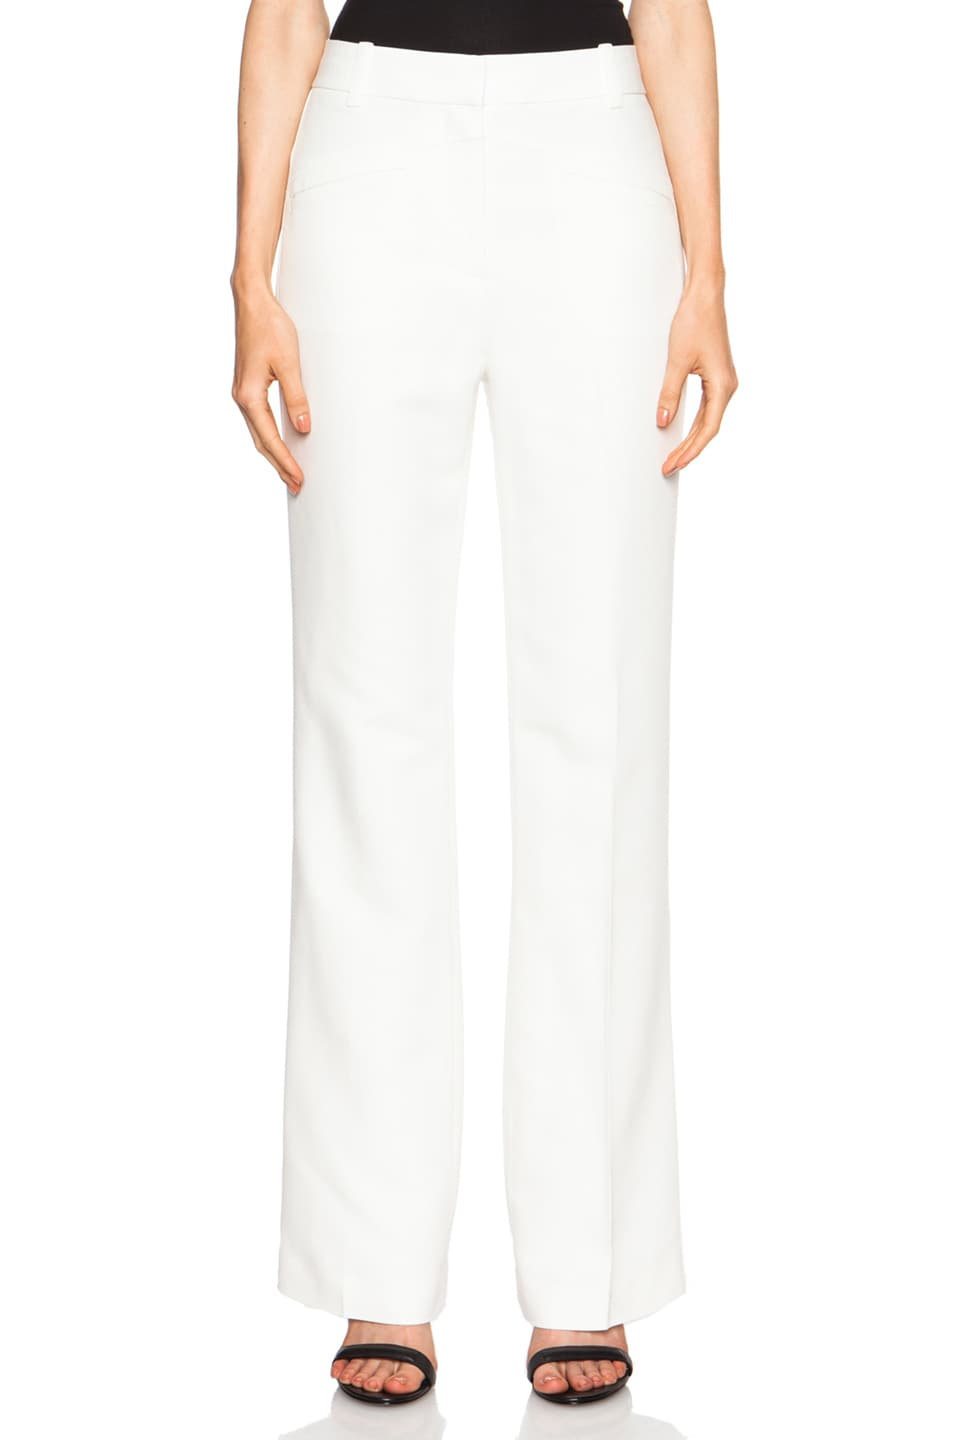 Image 1 of 3.1 phillip lim High Waisted Slim Flare Viscose-Blend Trouser in Ivory